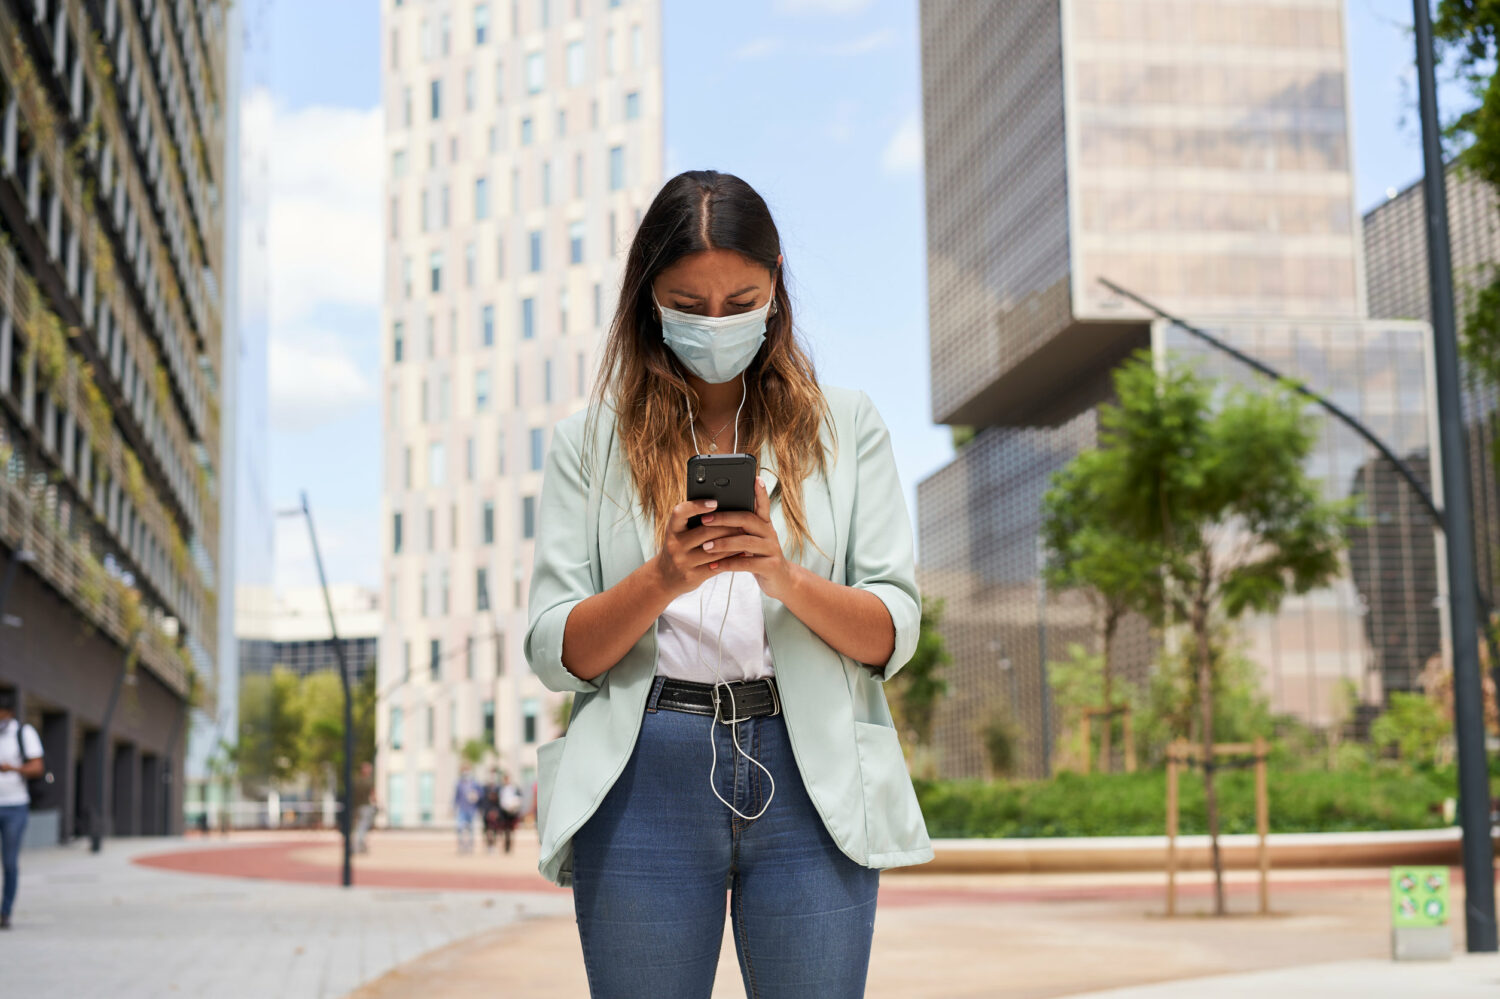 Image description: Young woman using the Noonlight safety app outdoors in the city.